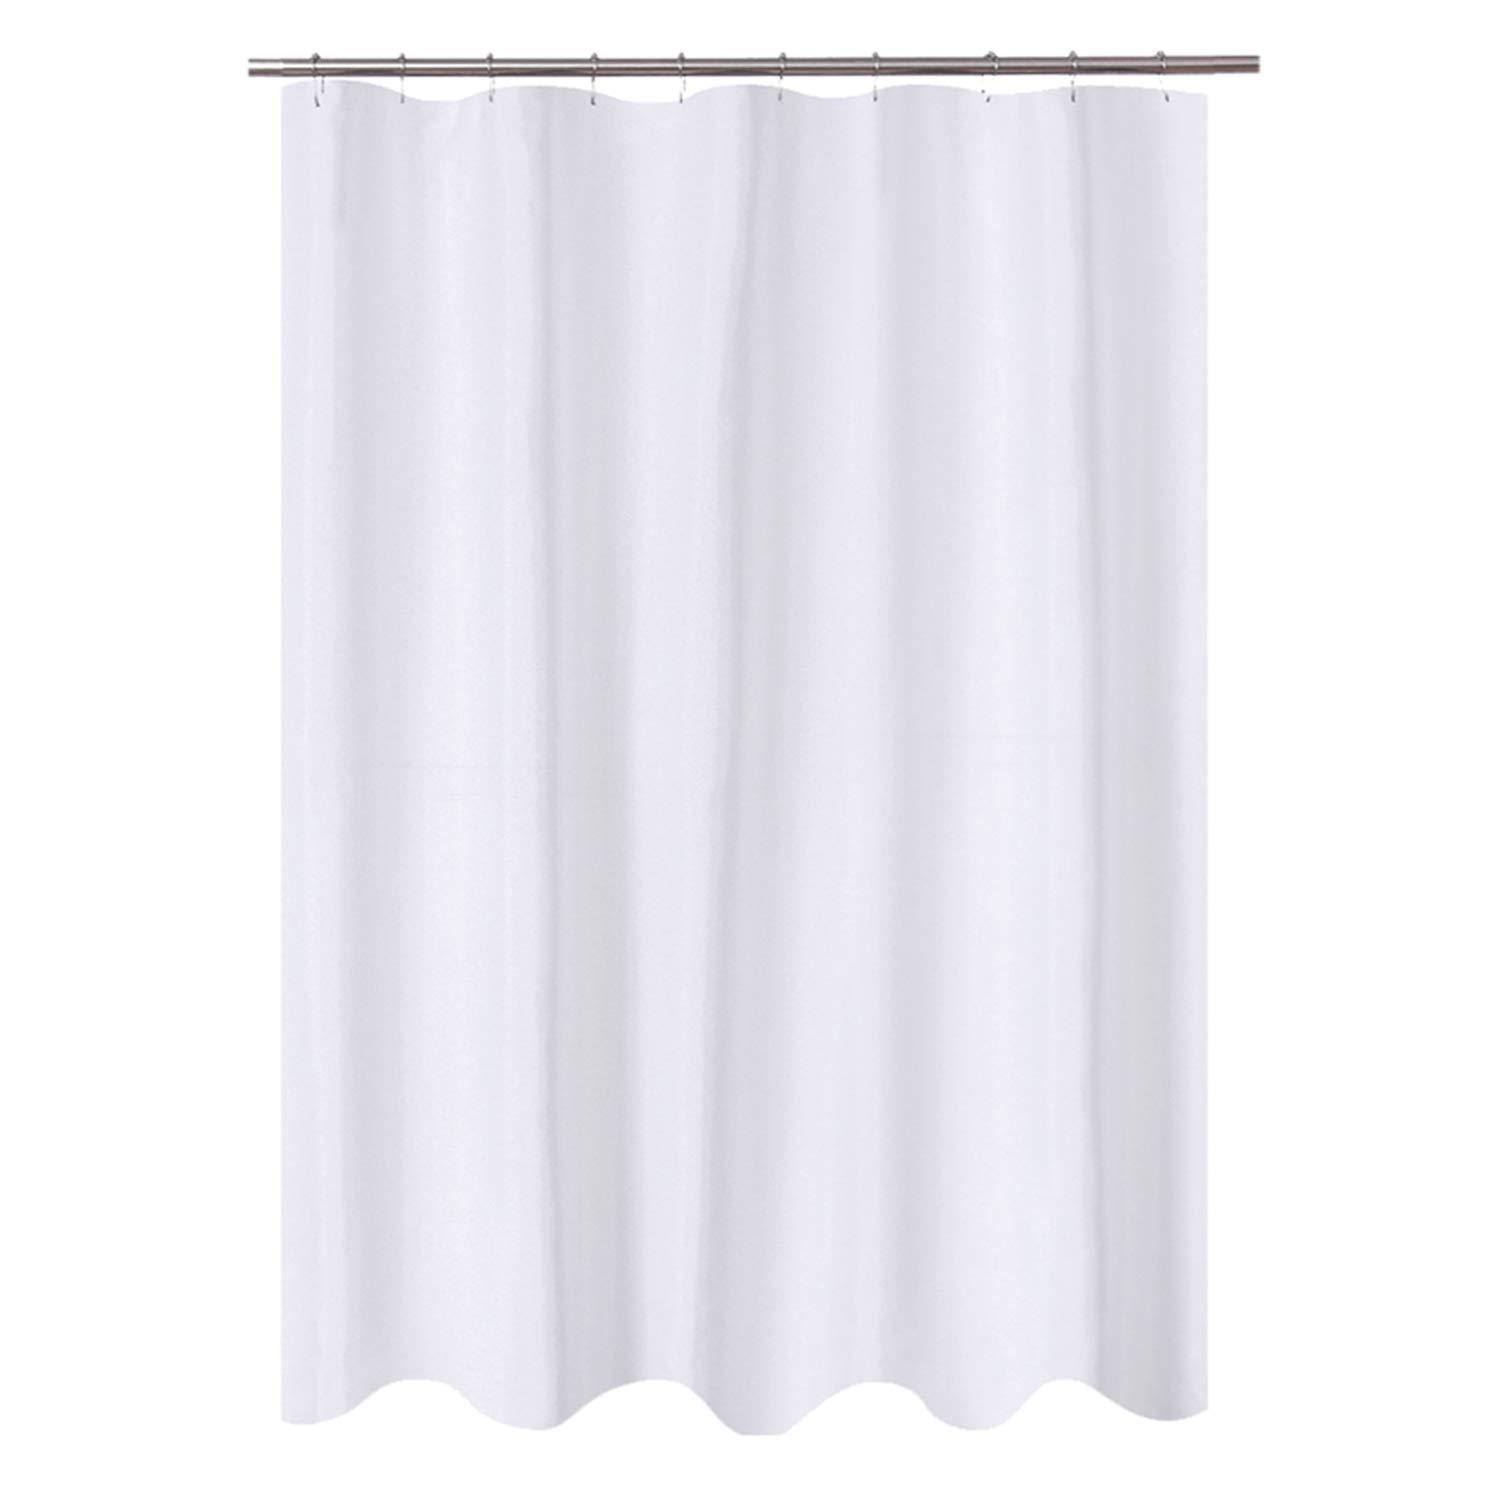 n y home fabric shower curtain liner 60 x 72 inches bath stall size hotel quality washable water repellent white bathroom curtains with grommets